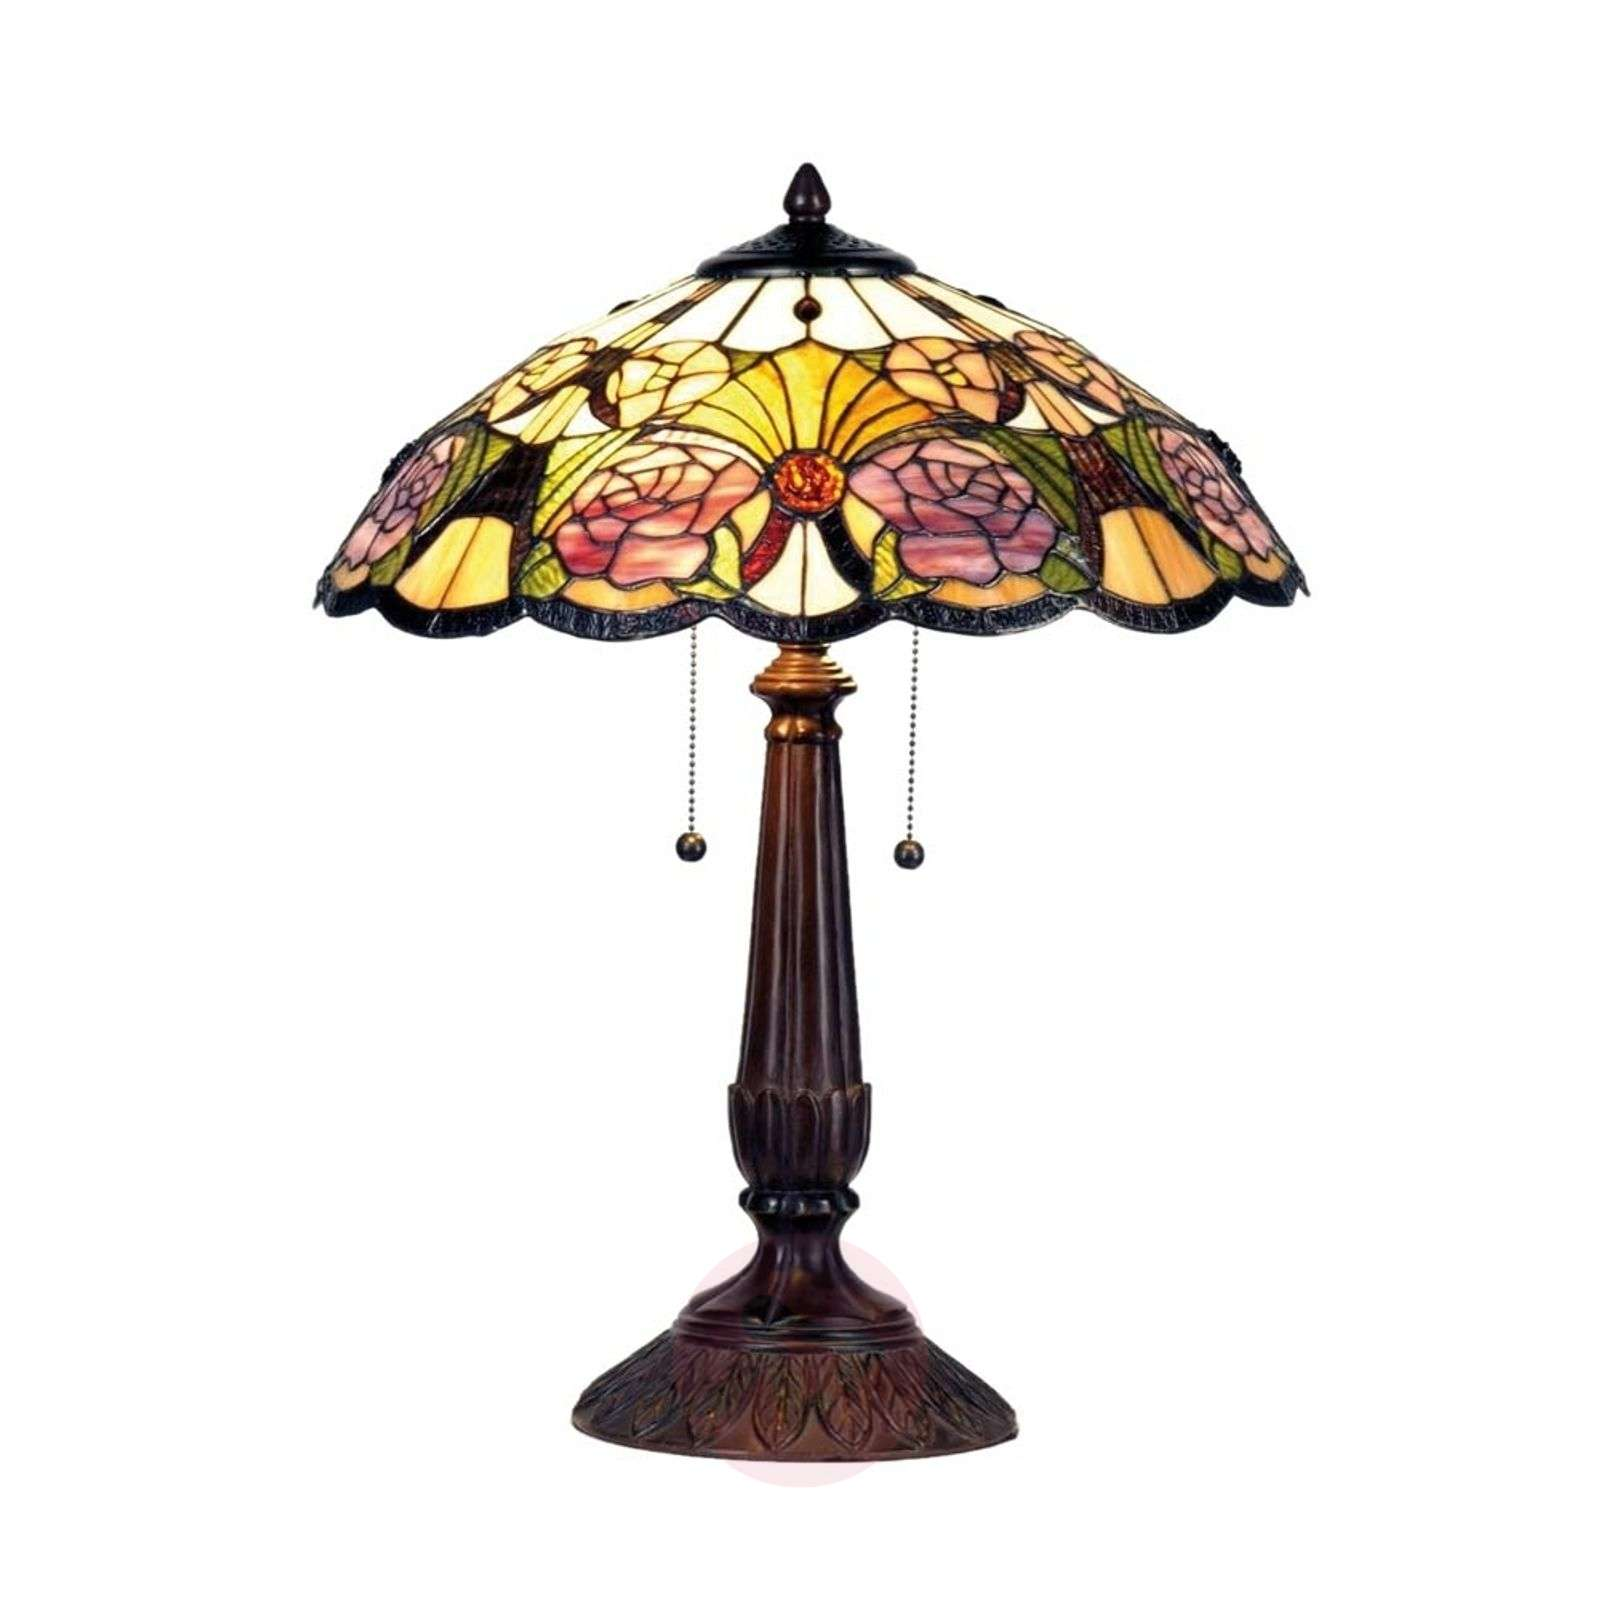 Floral table lamp Rose in the Tiffany style-6064154-01